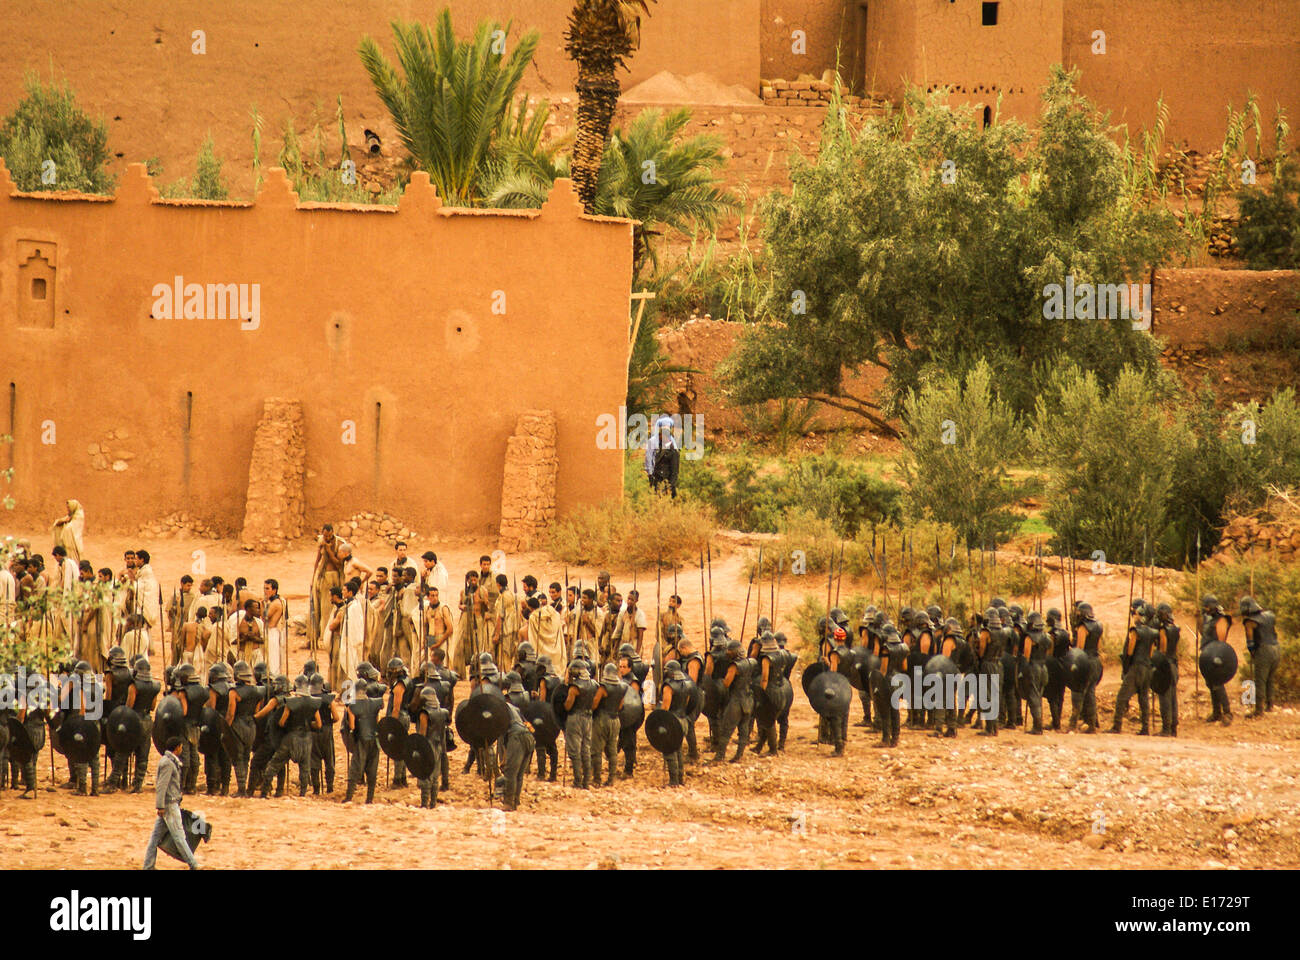 Filming of Game of Thrones in the village of Ait Benhaddou, Morocco - Stock Image